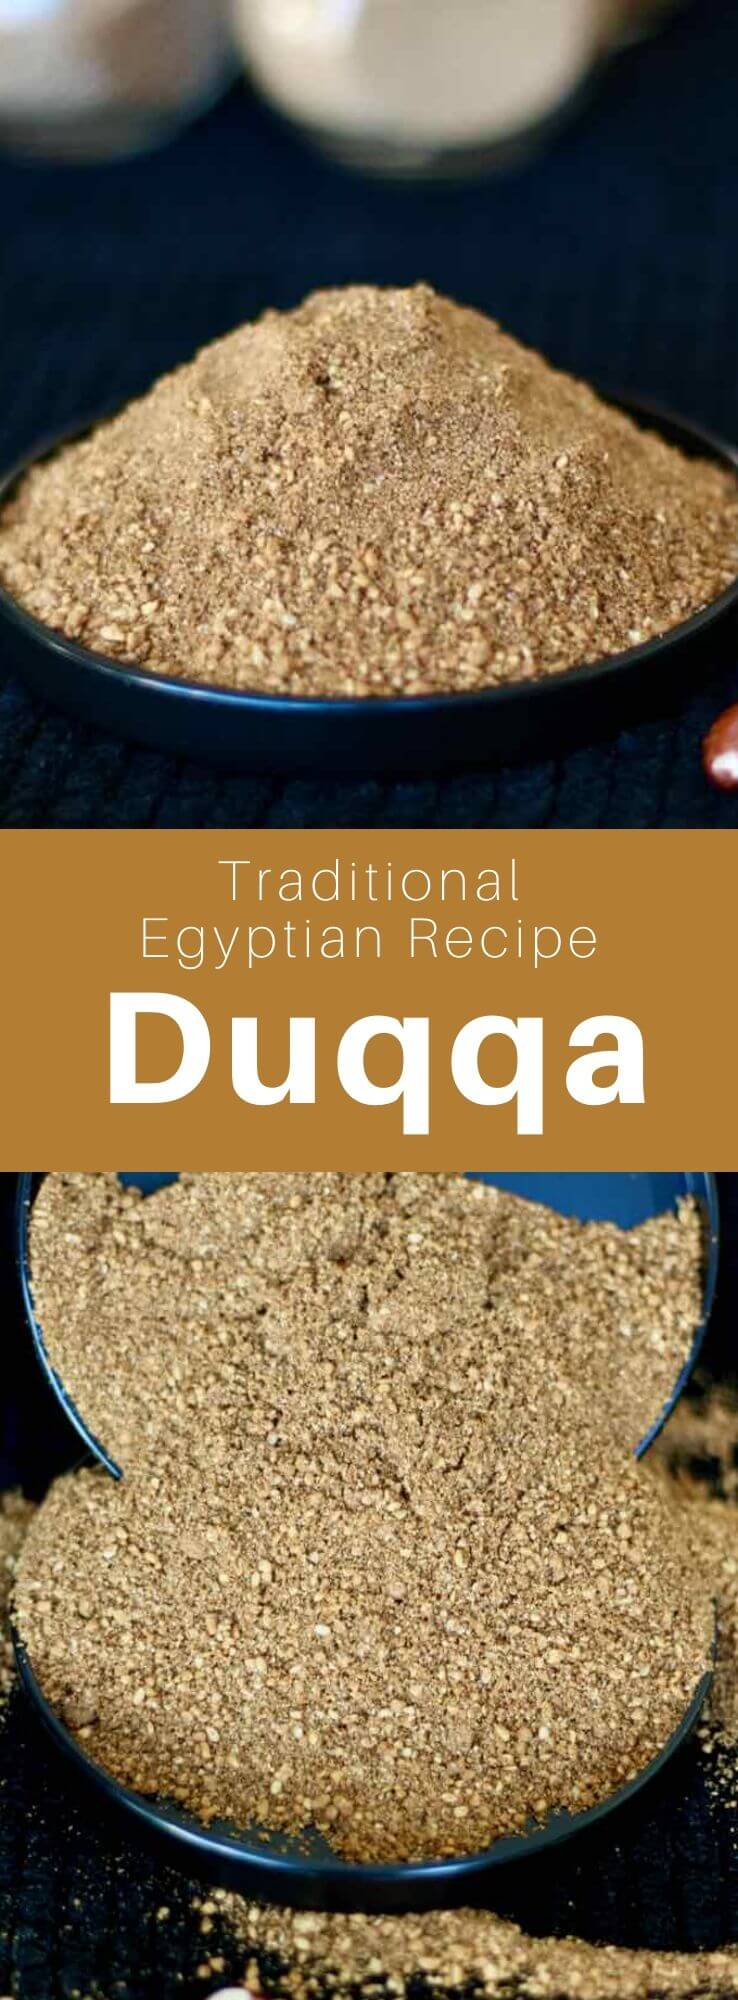 Dukkah is a blend of roasted spices, seeds and dried fruits, coming from Egypt and popular in the Middle East, Ethiopia, Australia and New Zealand. #Egypt #EgyptianCuisine #EgyptianFood #EgyptianRecipe #WorldCuisine #196flavors